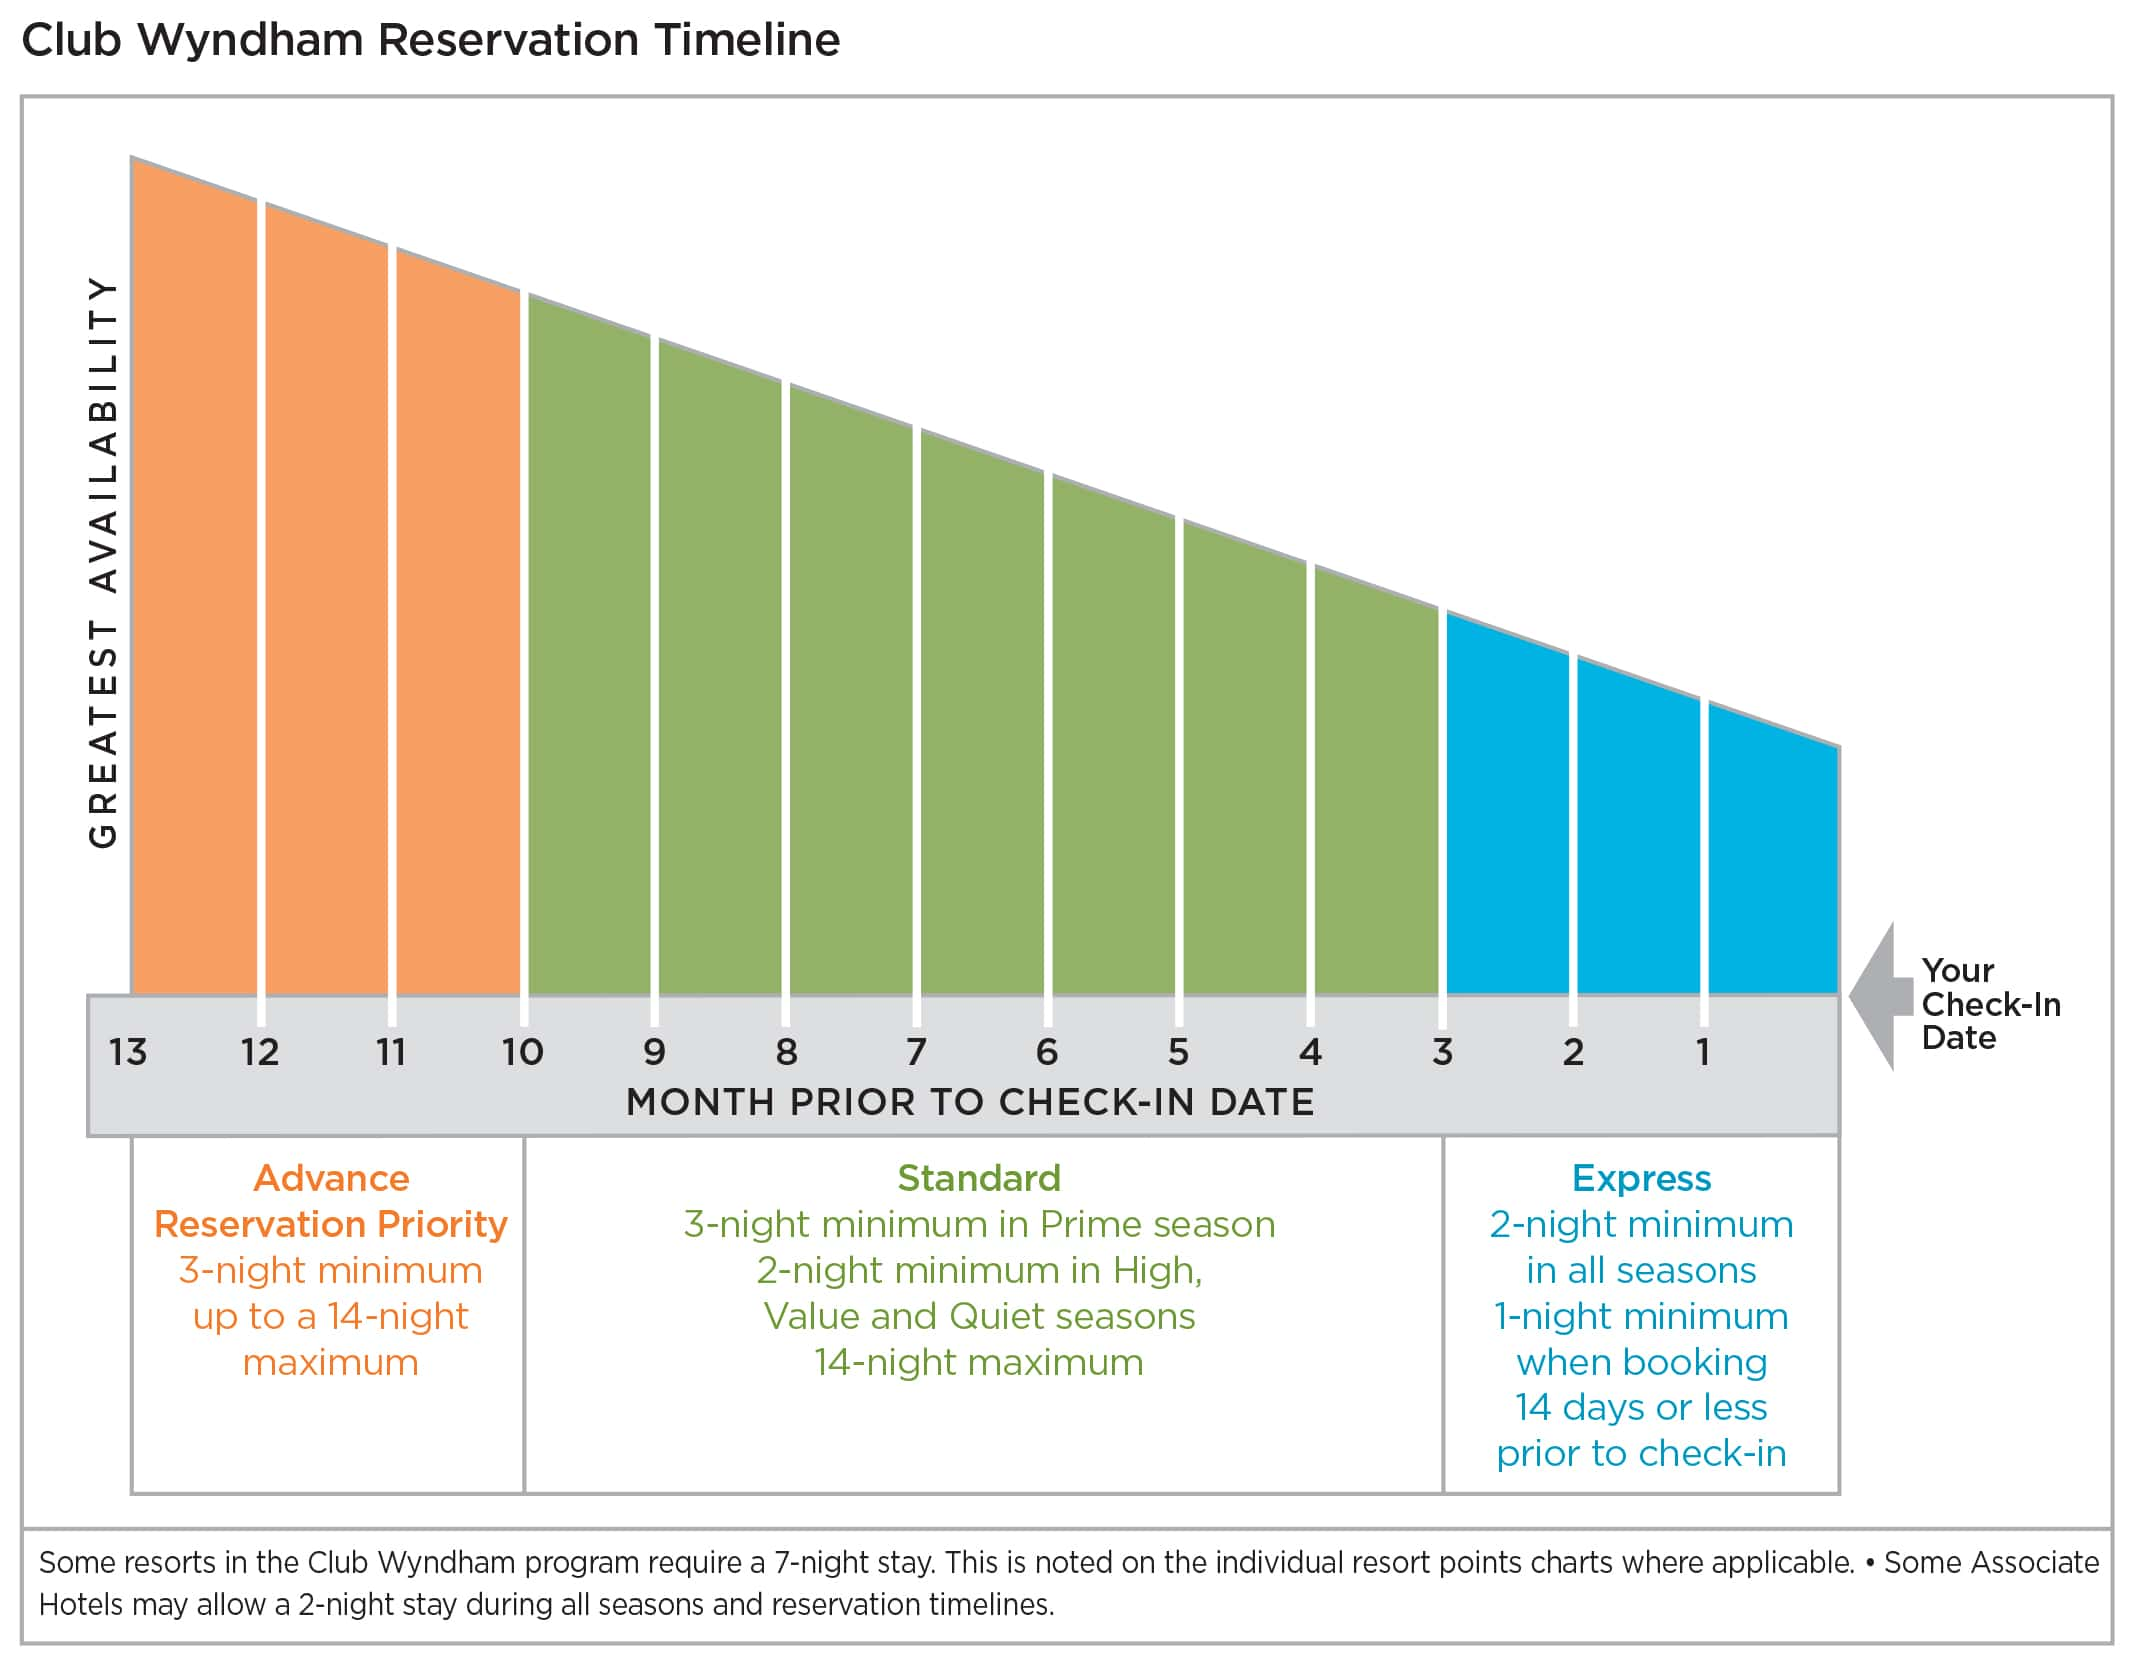 CLUB WYNDHAM Plus Reservation Timeline